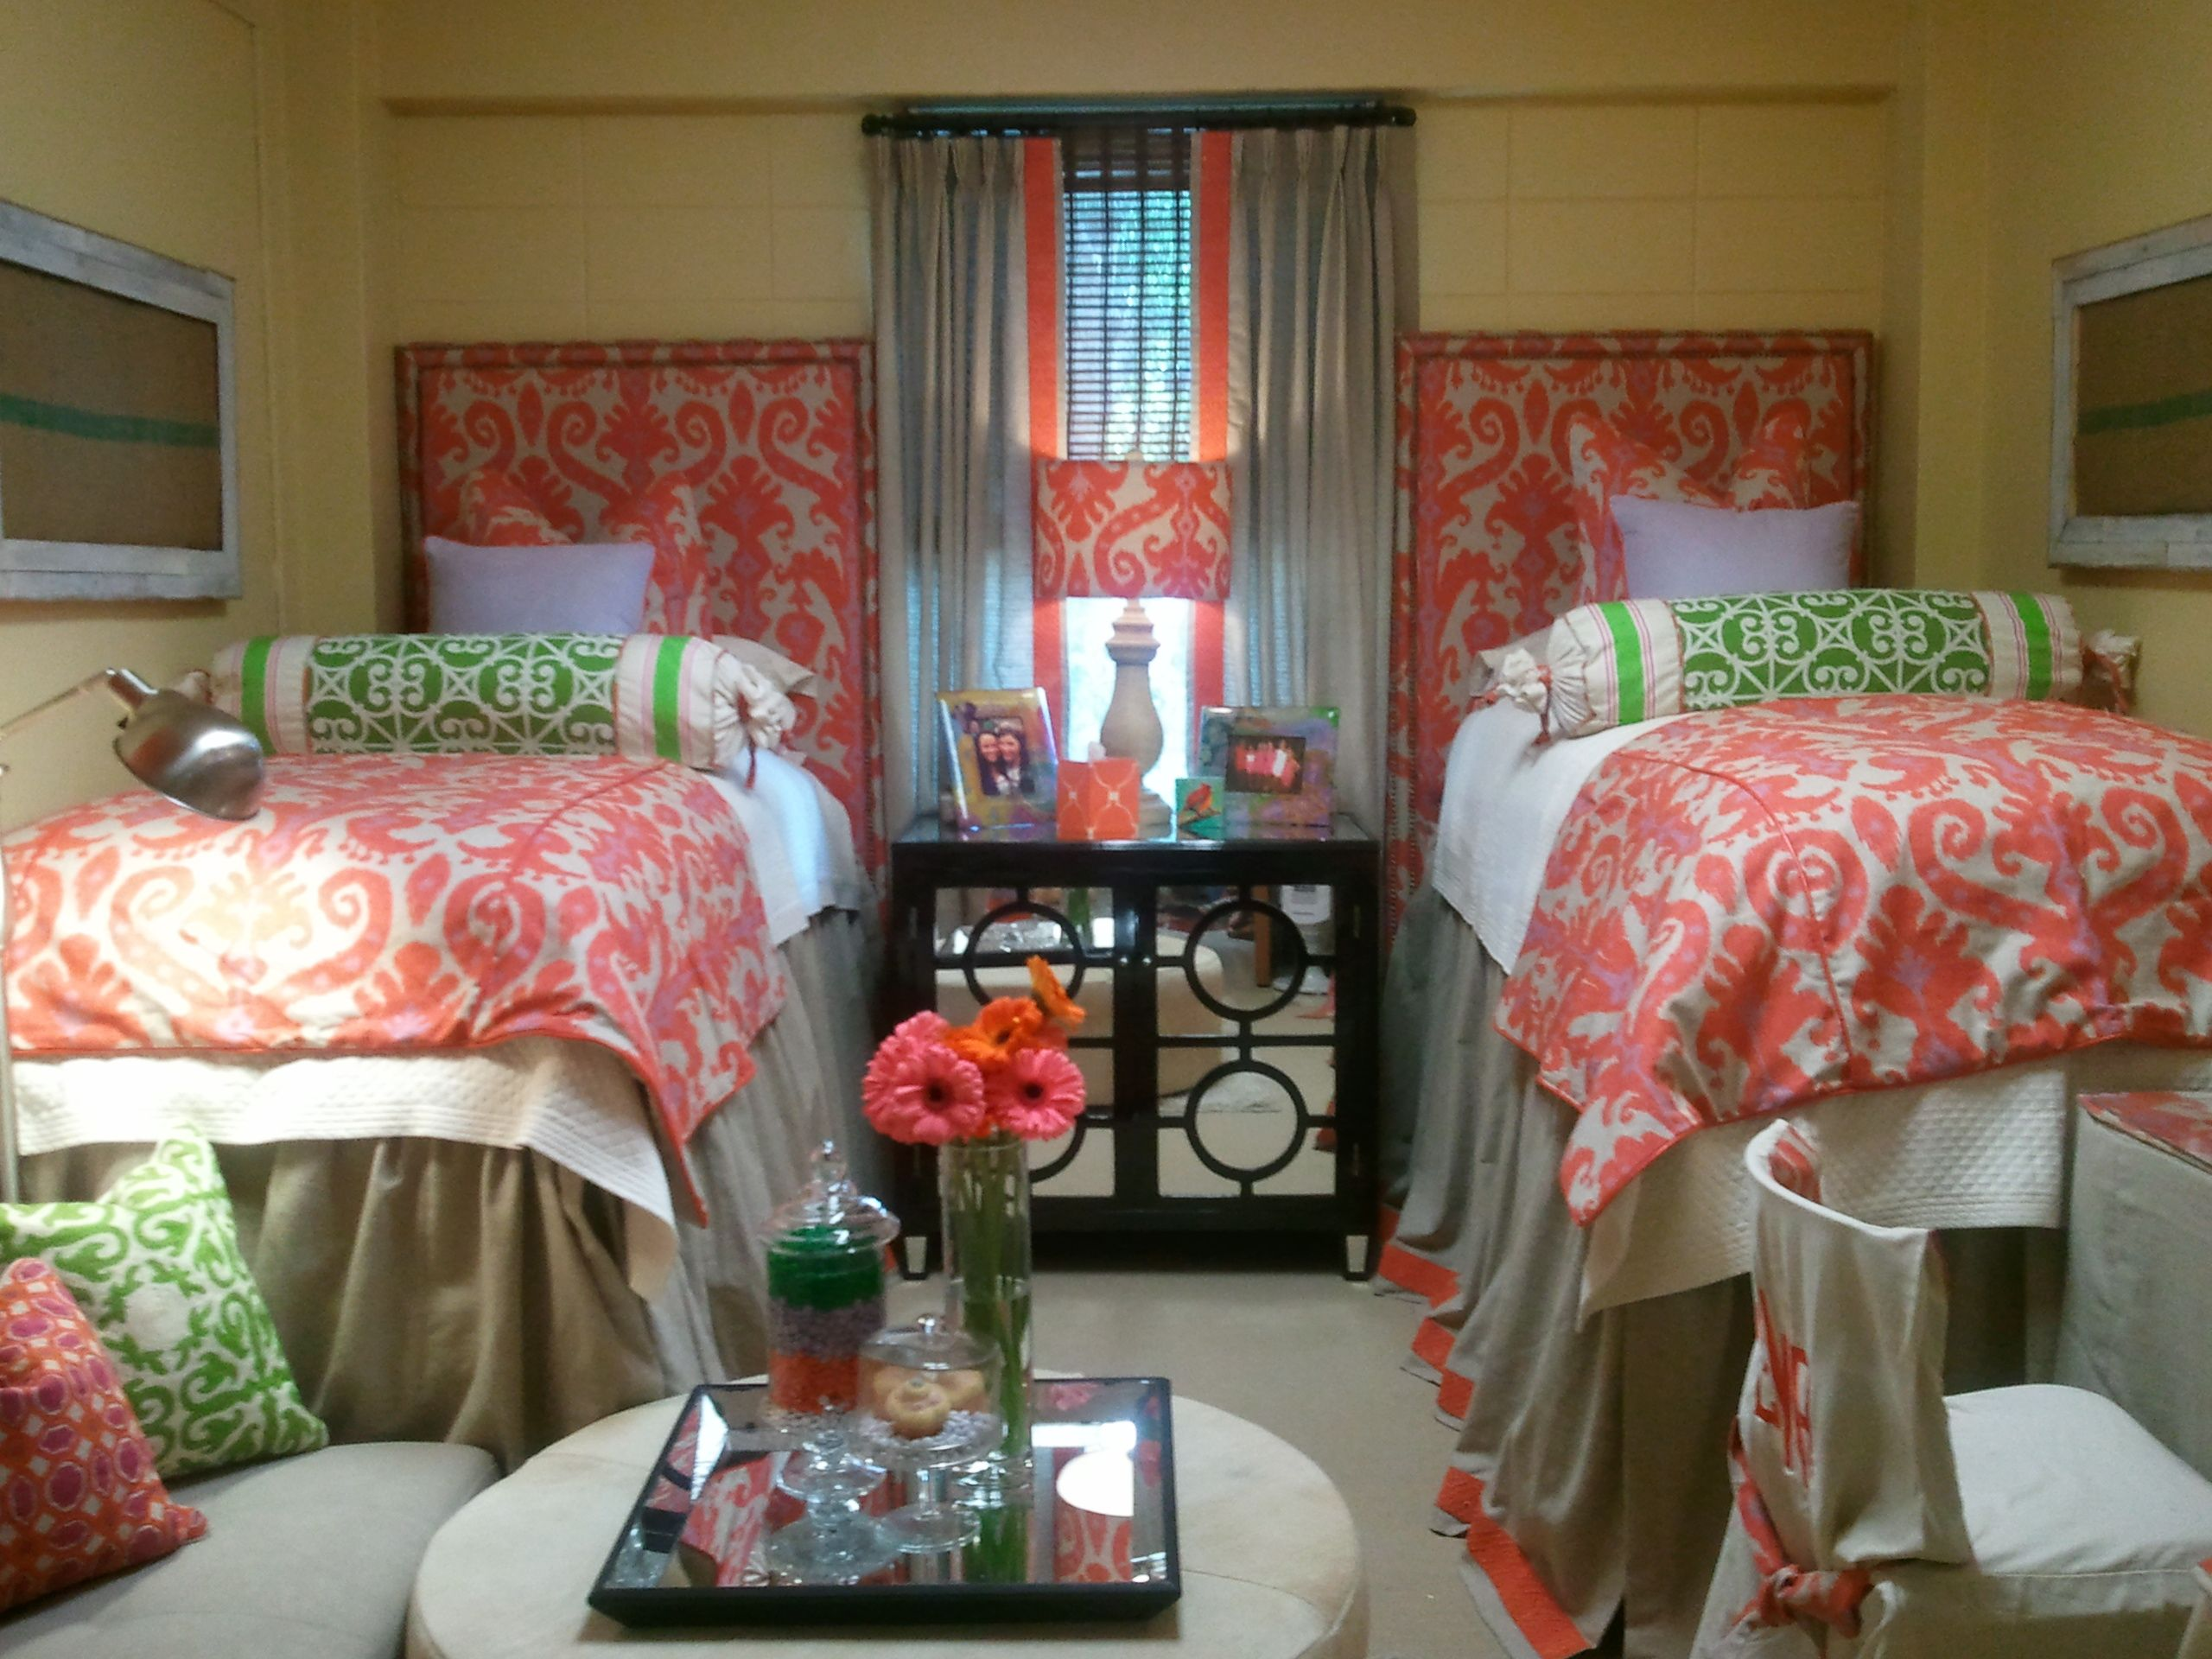 Dorm Room Design Ideas, Pictures, Remodel And Decor